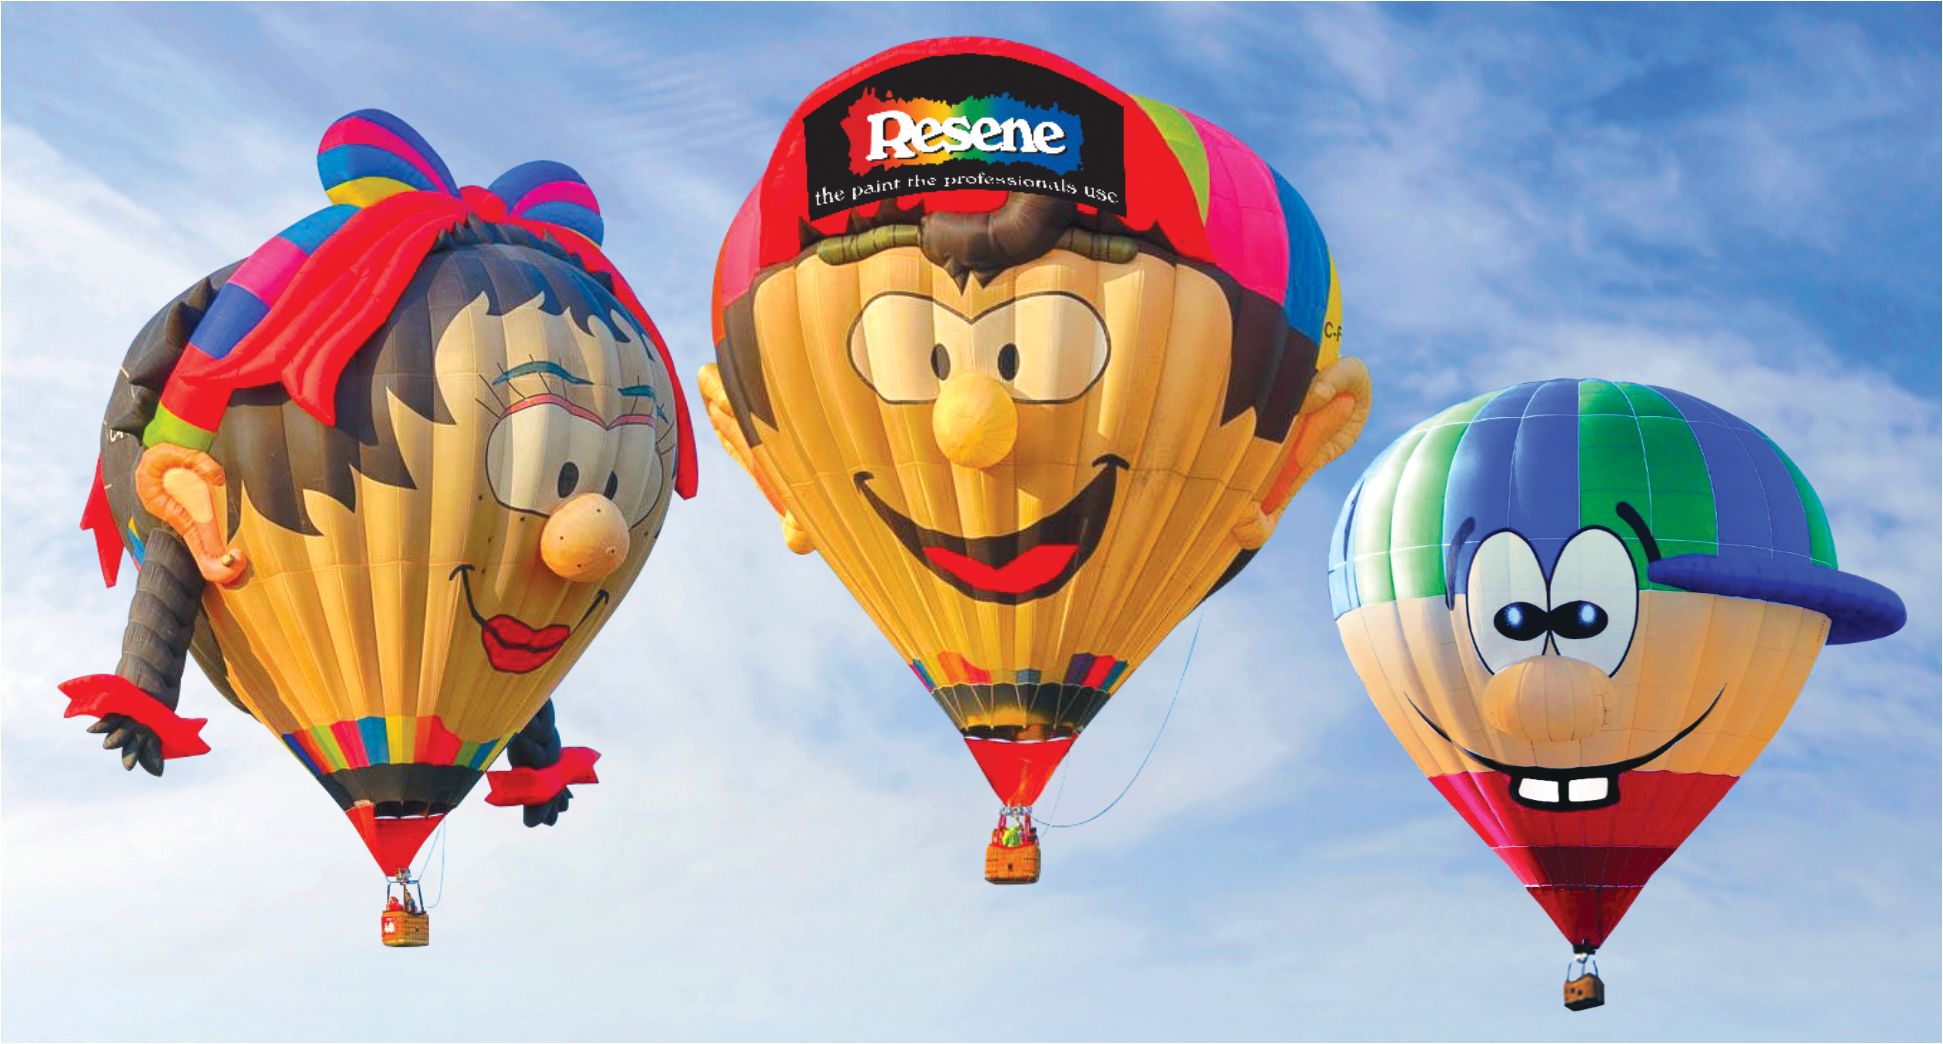 Balloons Over Waikato Special Shapes 2018: Resene 'Colour Fun for Everyone' Family